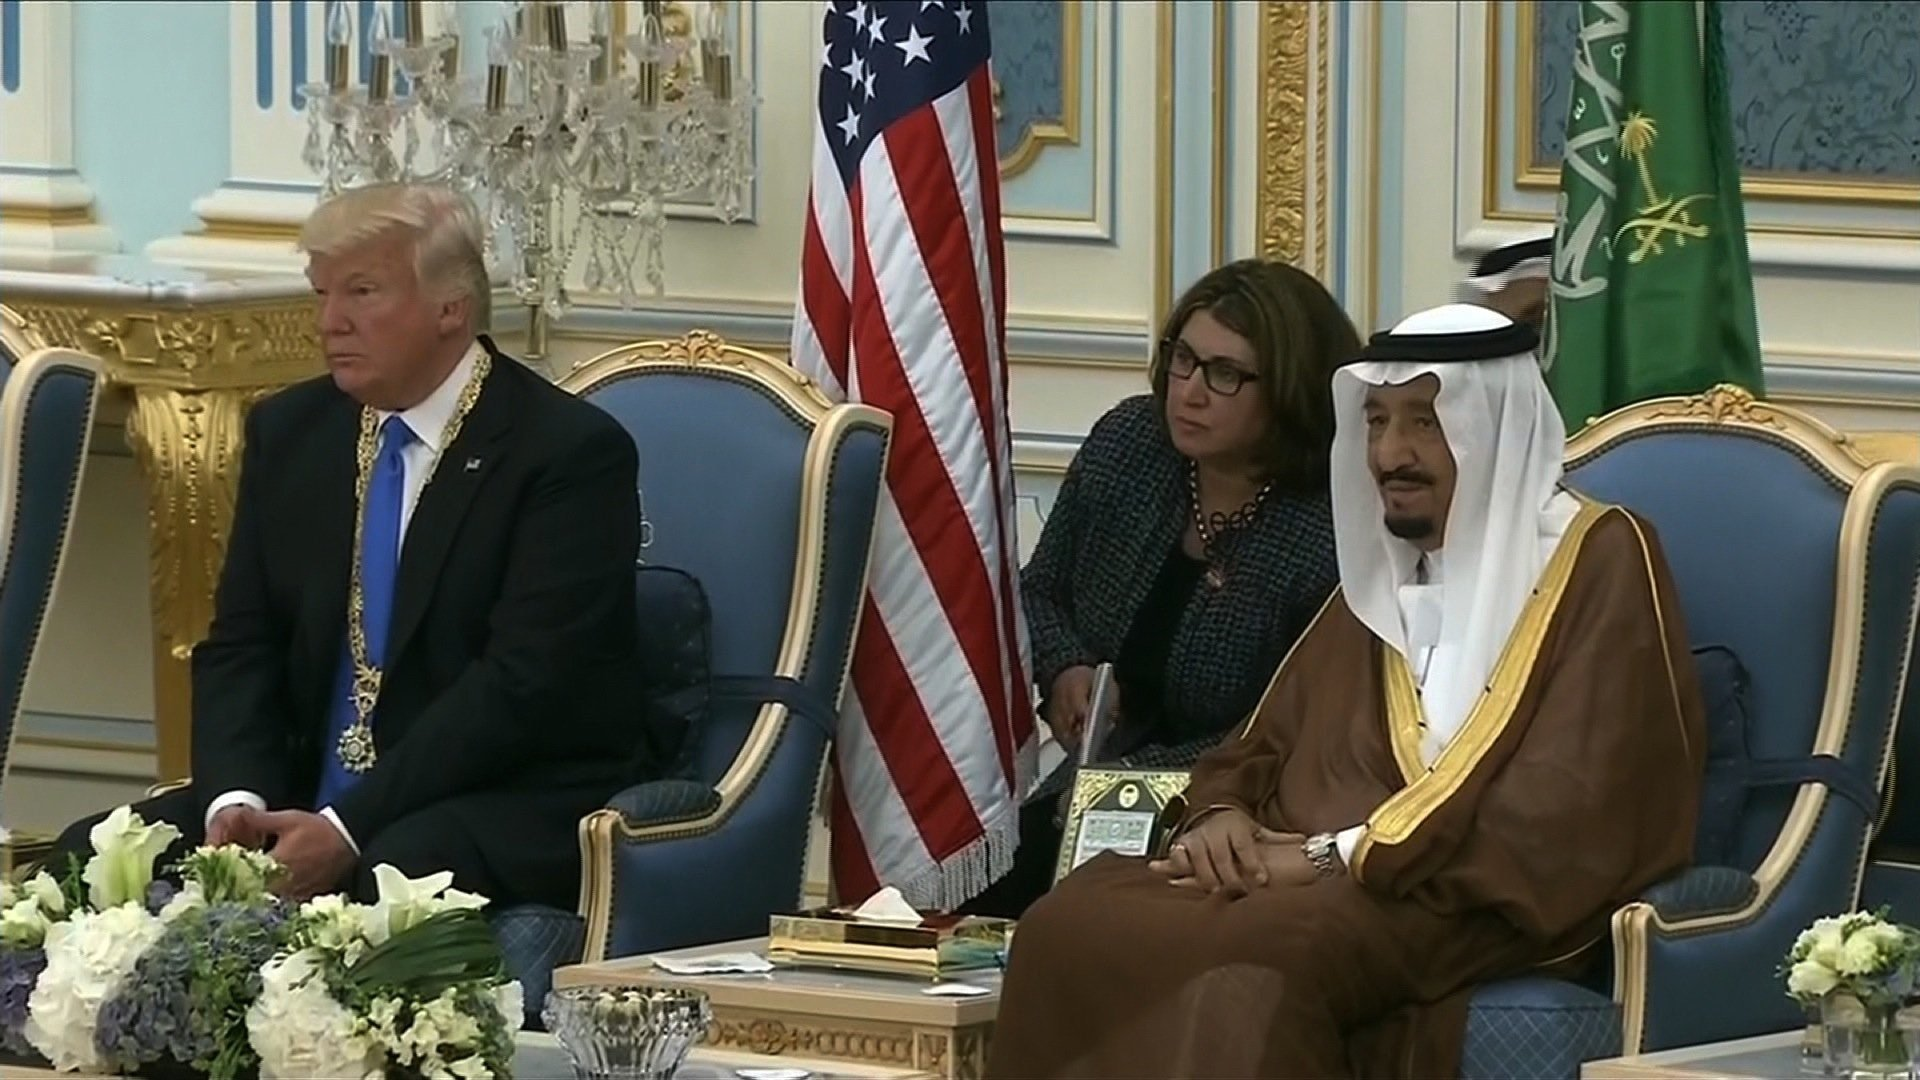 Trump Departs Saudi Arabia For Israel